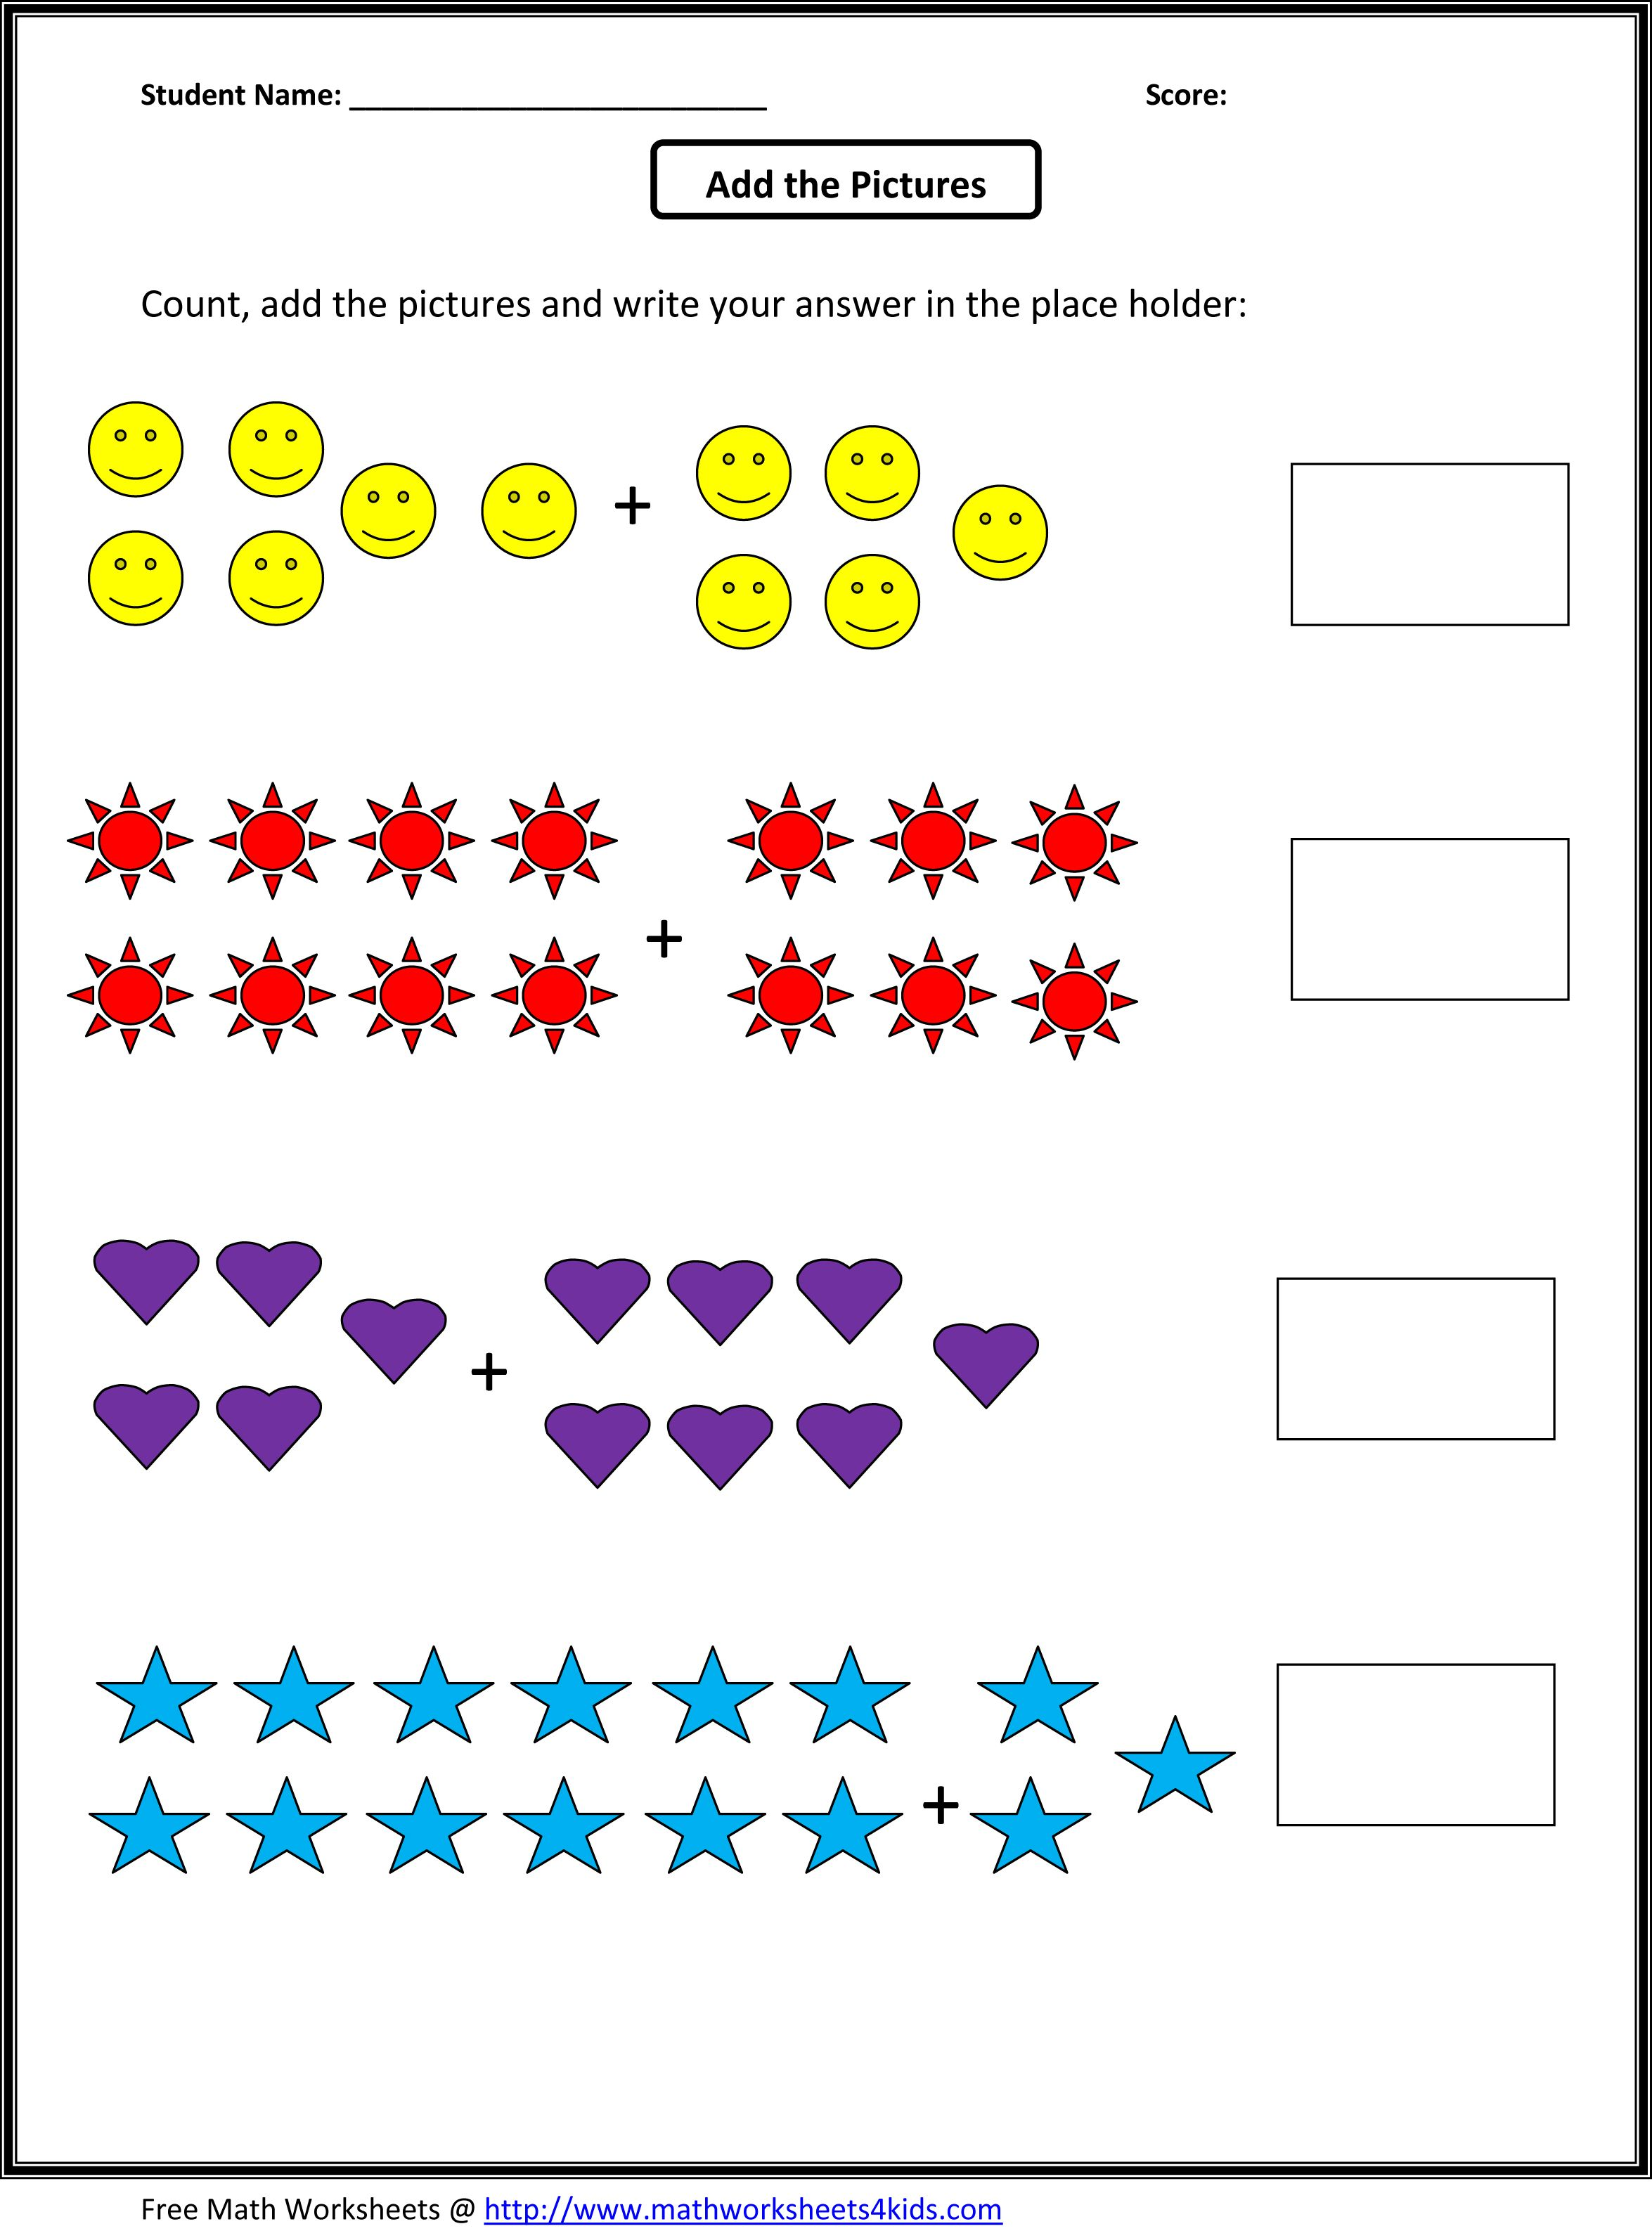 medium resolution of Count and add the pictures   First grade math worksheets